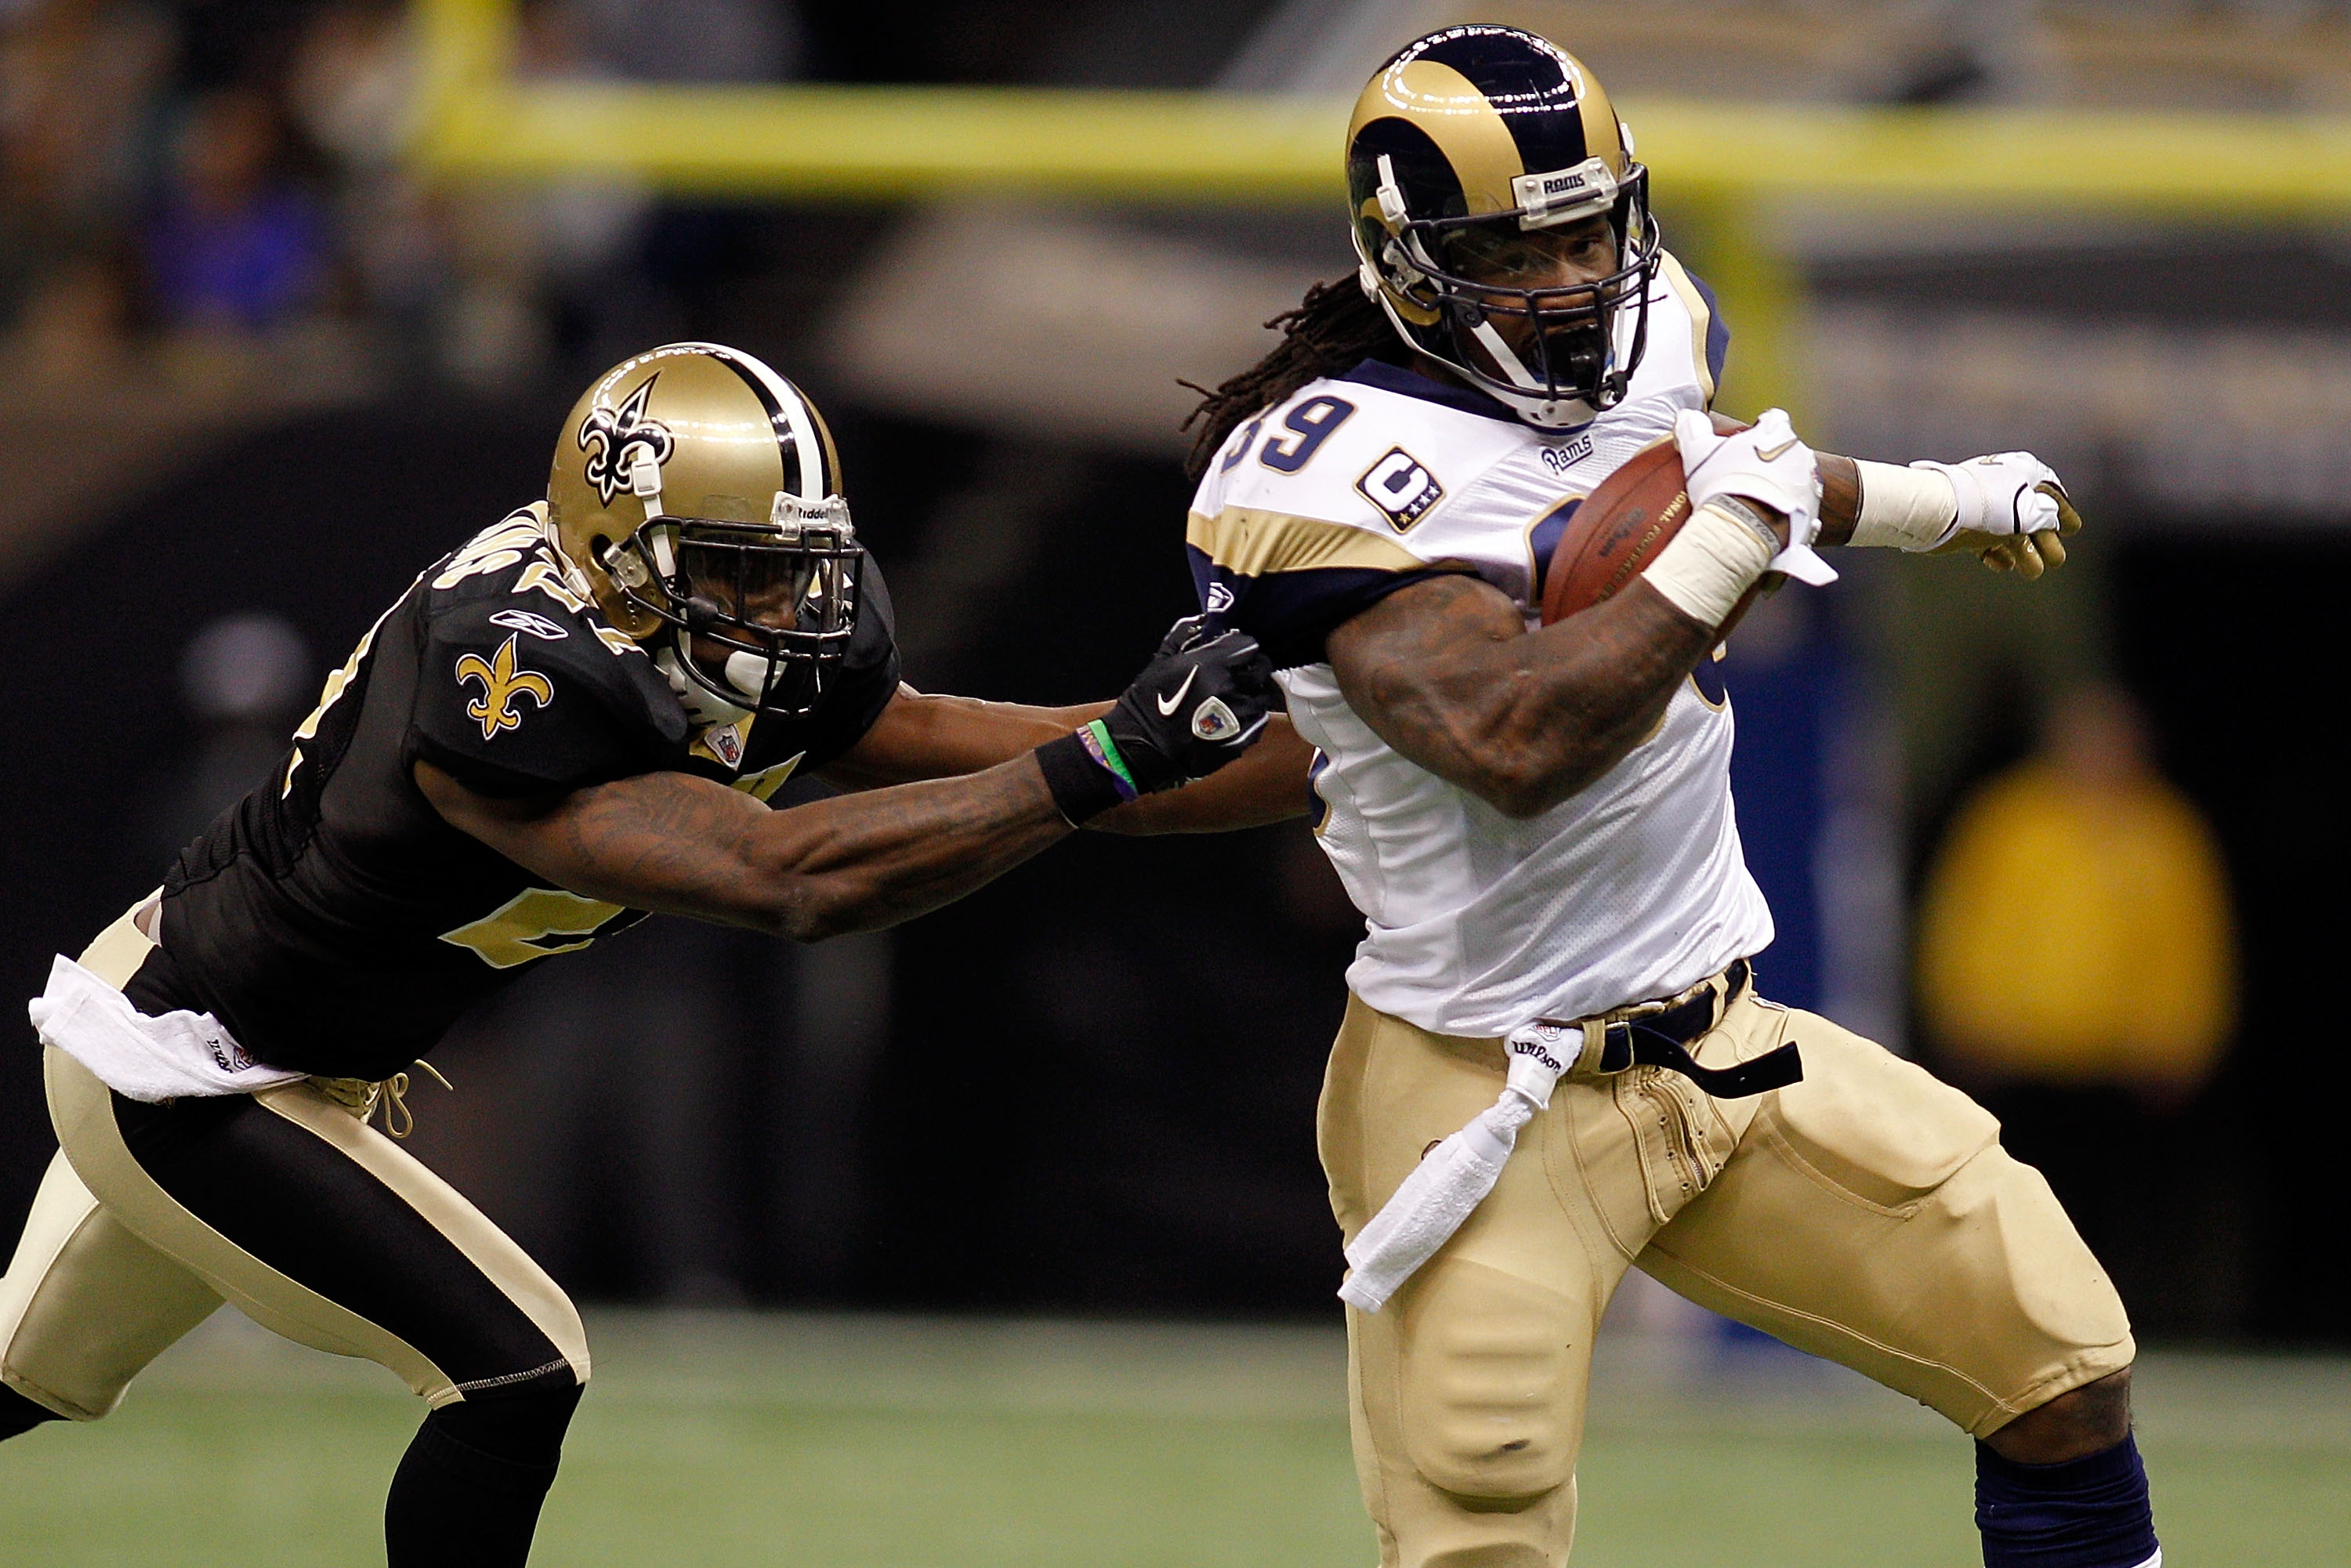 NEW ORLEANS, LA - DECEMBER 12:  Steven Jackson #39 of the St. Louis Rams is tackled by Malcom Jenkins #27 of the New Orleans Saints at the Louisiana Superdome on December 12, 2010 in New Orleans, Louisiana.  (Photo by Chris Graythen/Getty Images)